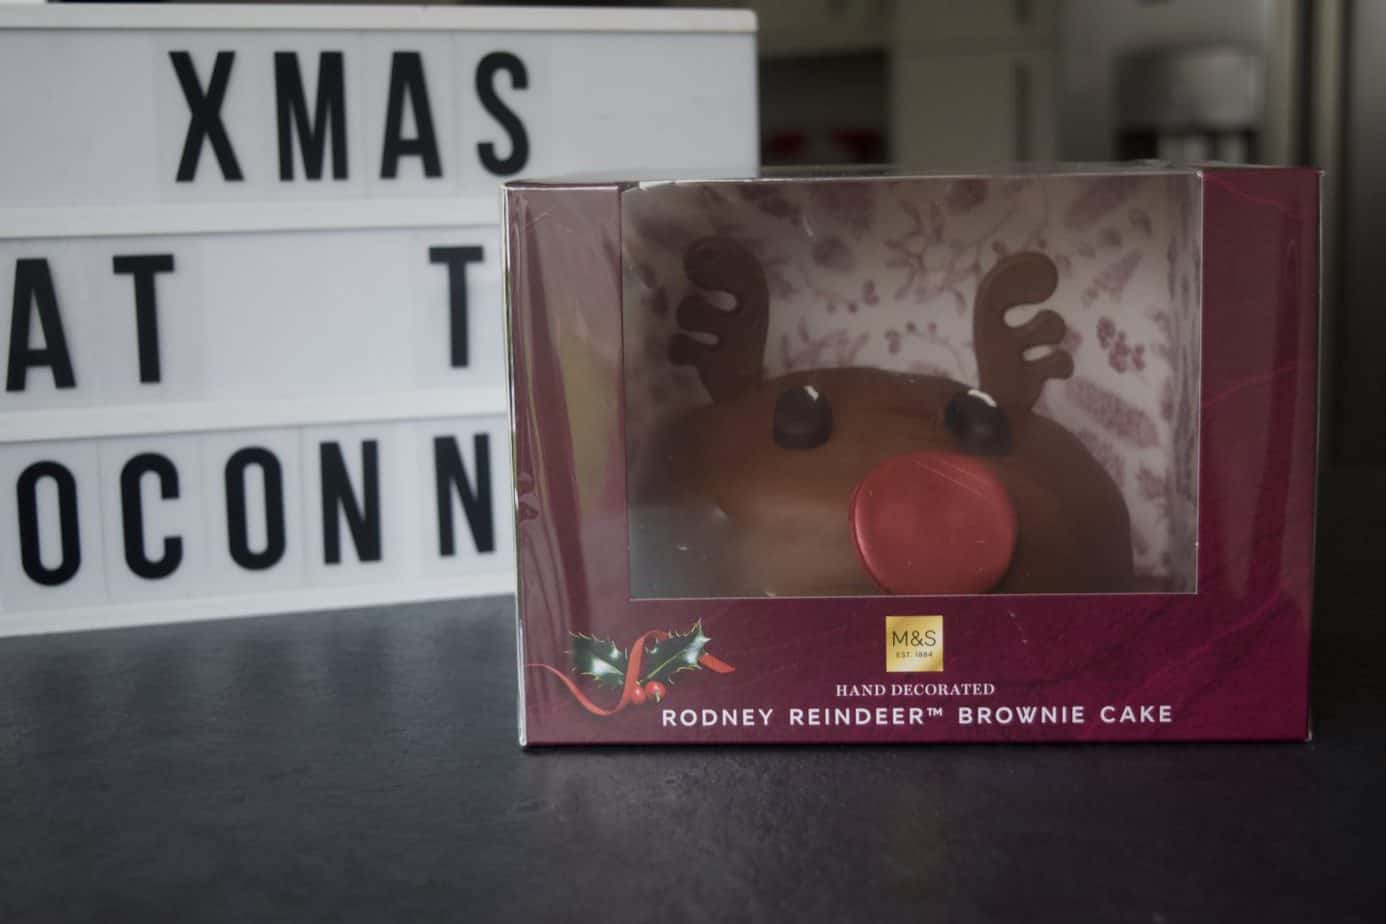 Rodney The Rudolf brownie cake from Marks and Spencer Christmas range